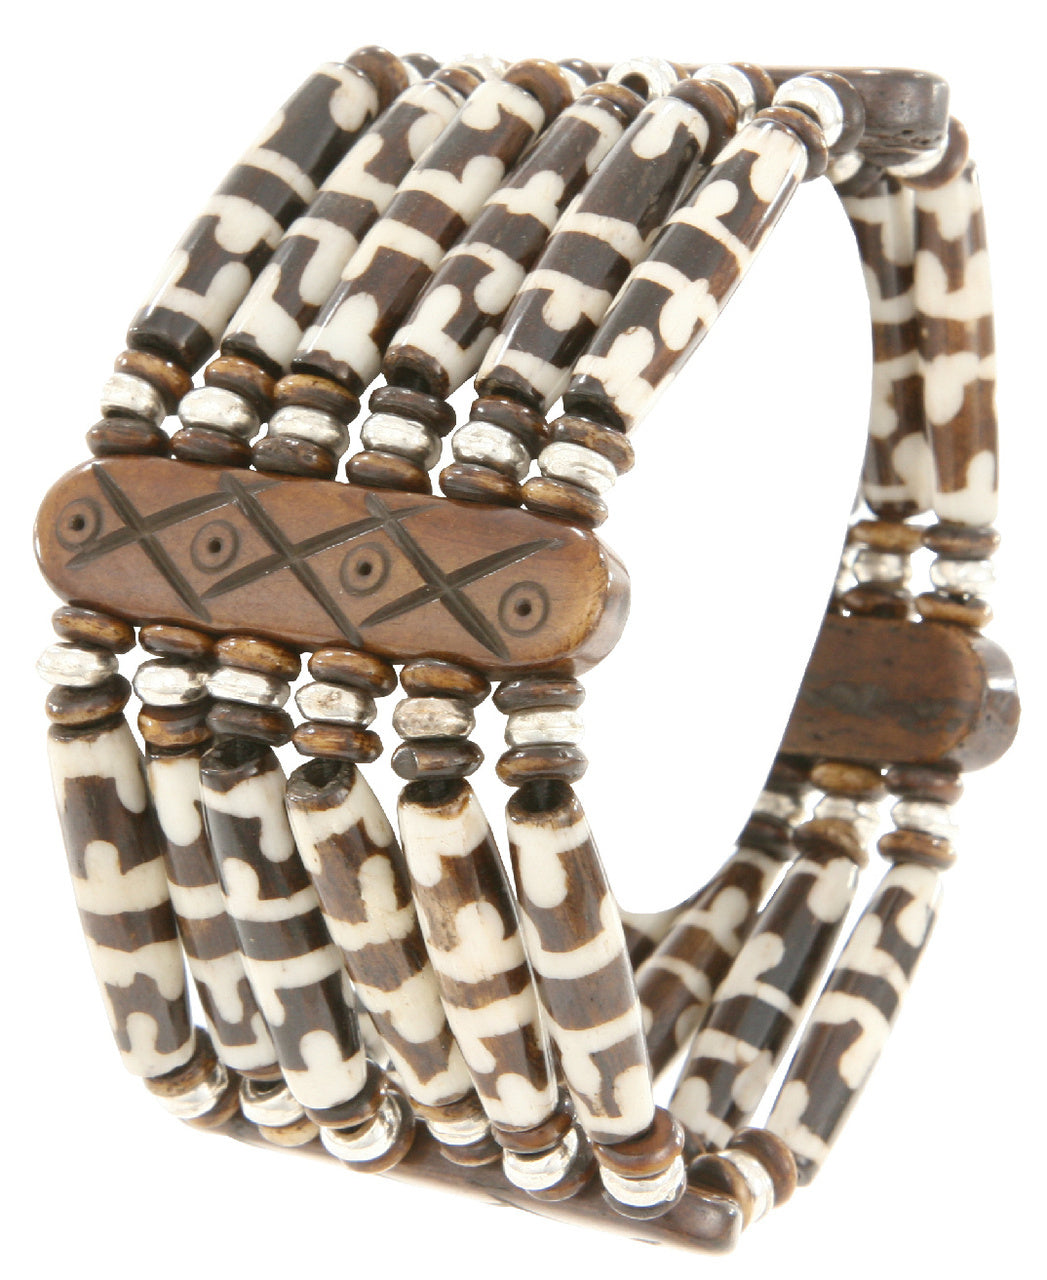 Handmade Indian Wood Resin Bead Stretch Bracelet